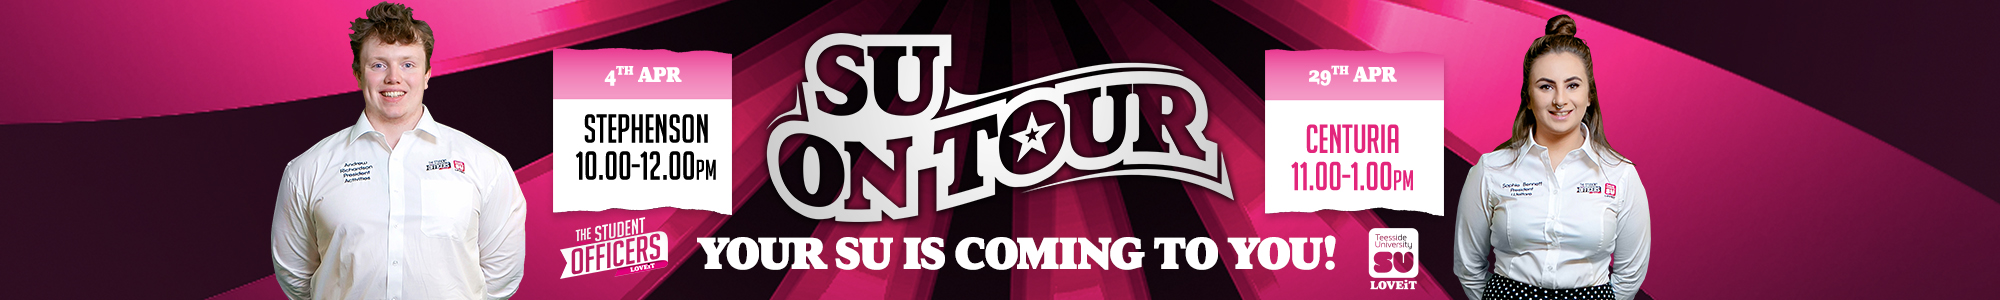 Su on tour small web banner updated